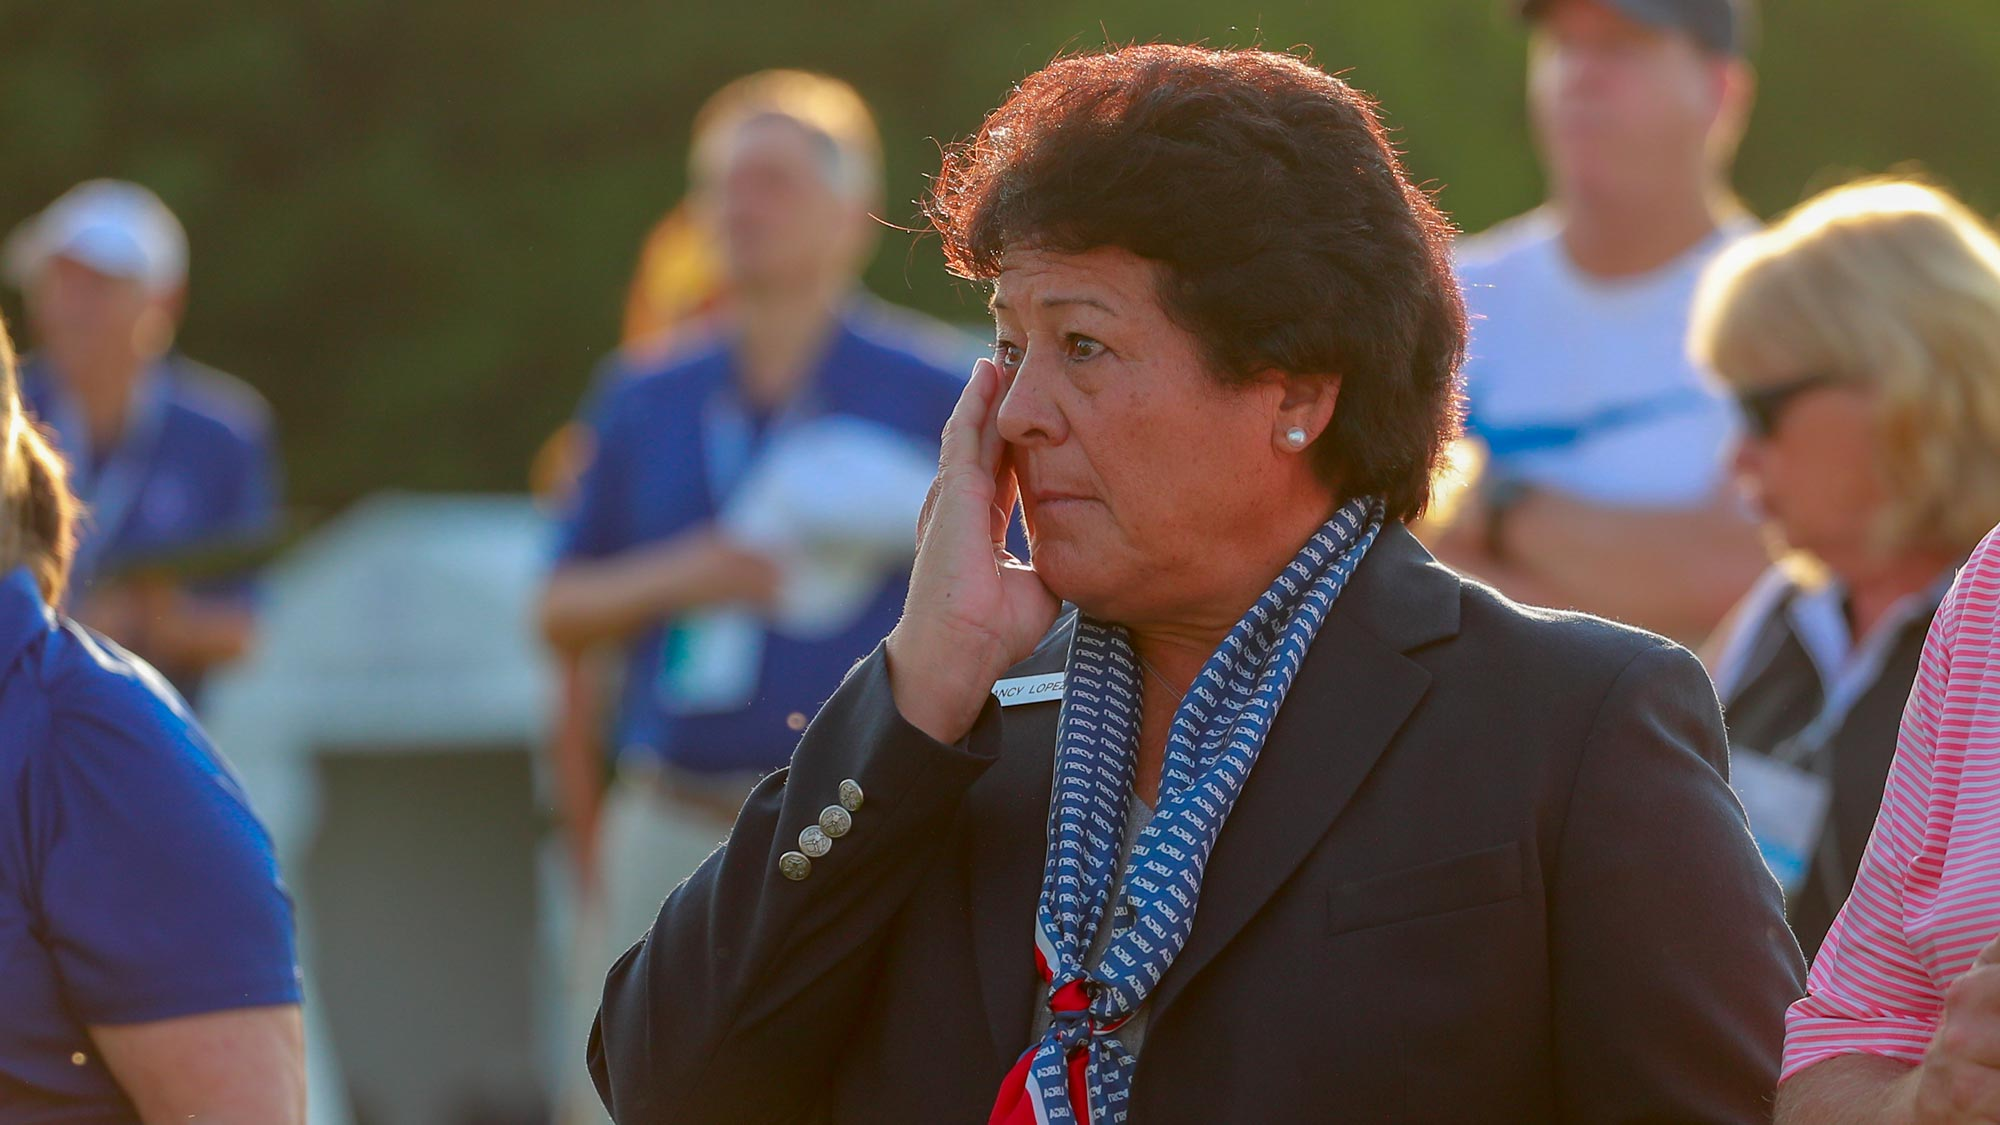 Nancy Lopez was the honorary starter at the inaugural U.S. Women's Senior Open